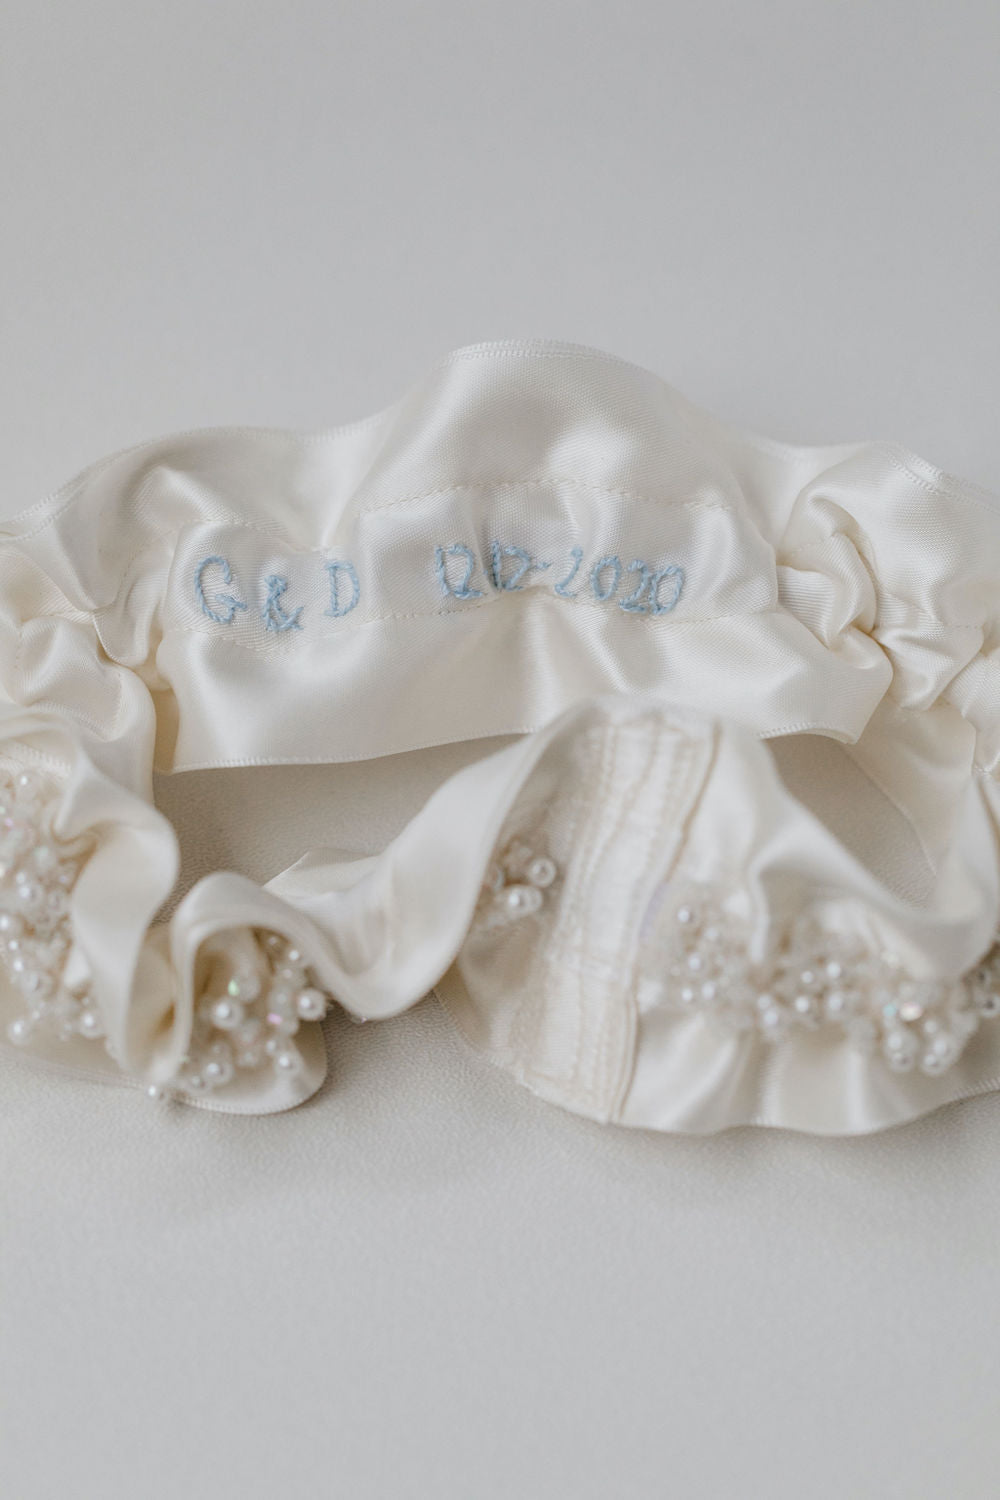 personalized wedding garter heirloom with crystals and sparkle by luxury garter designer, The Garter Girl